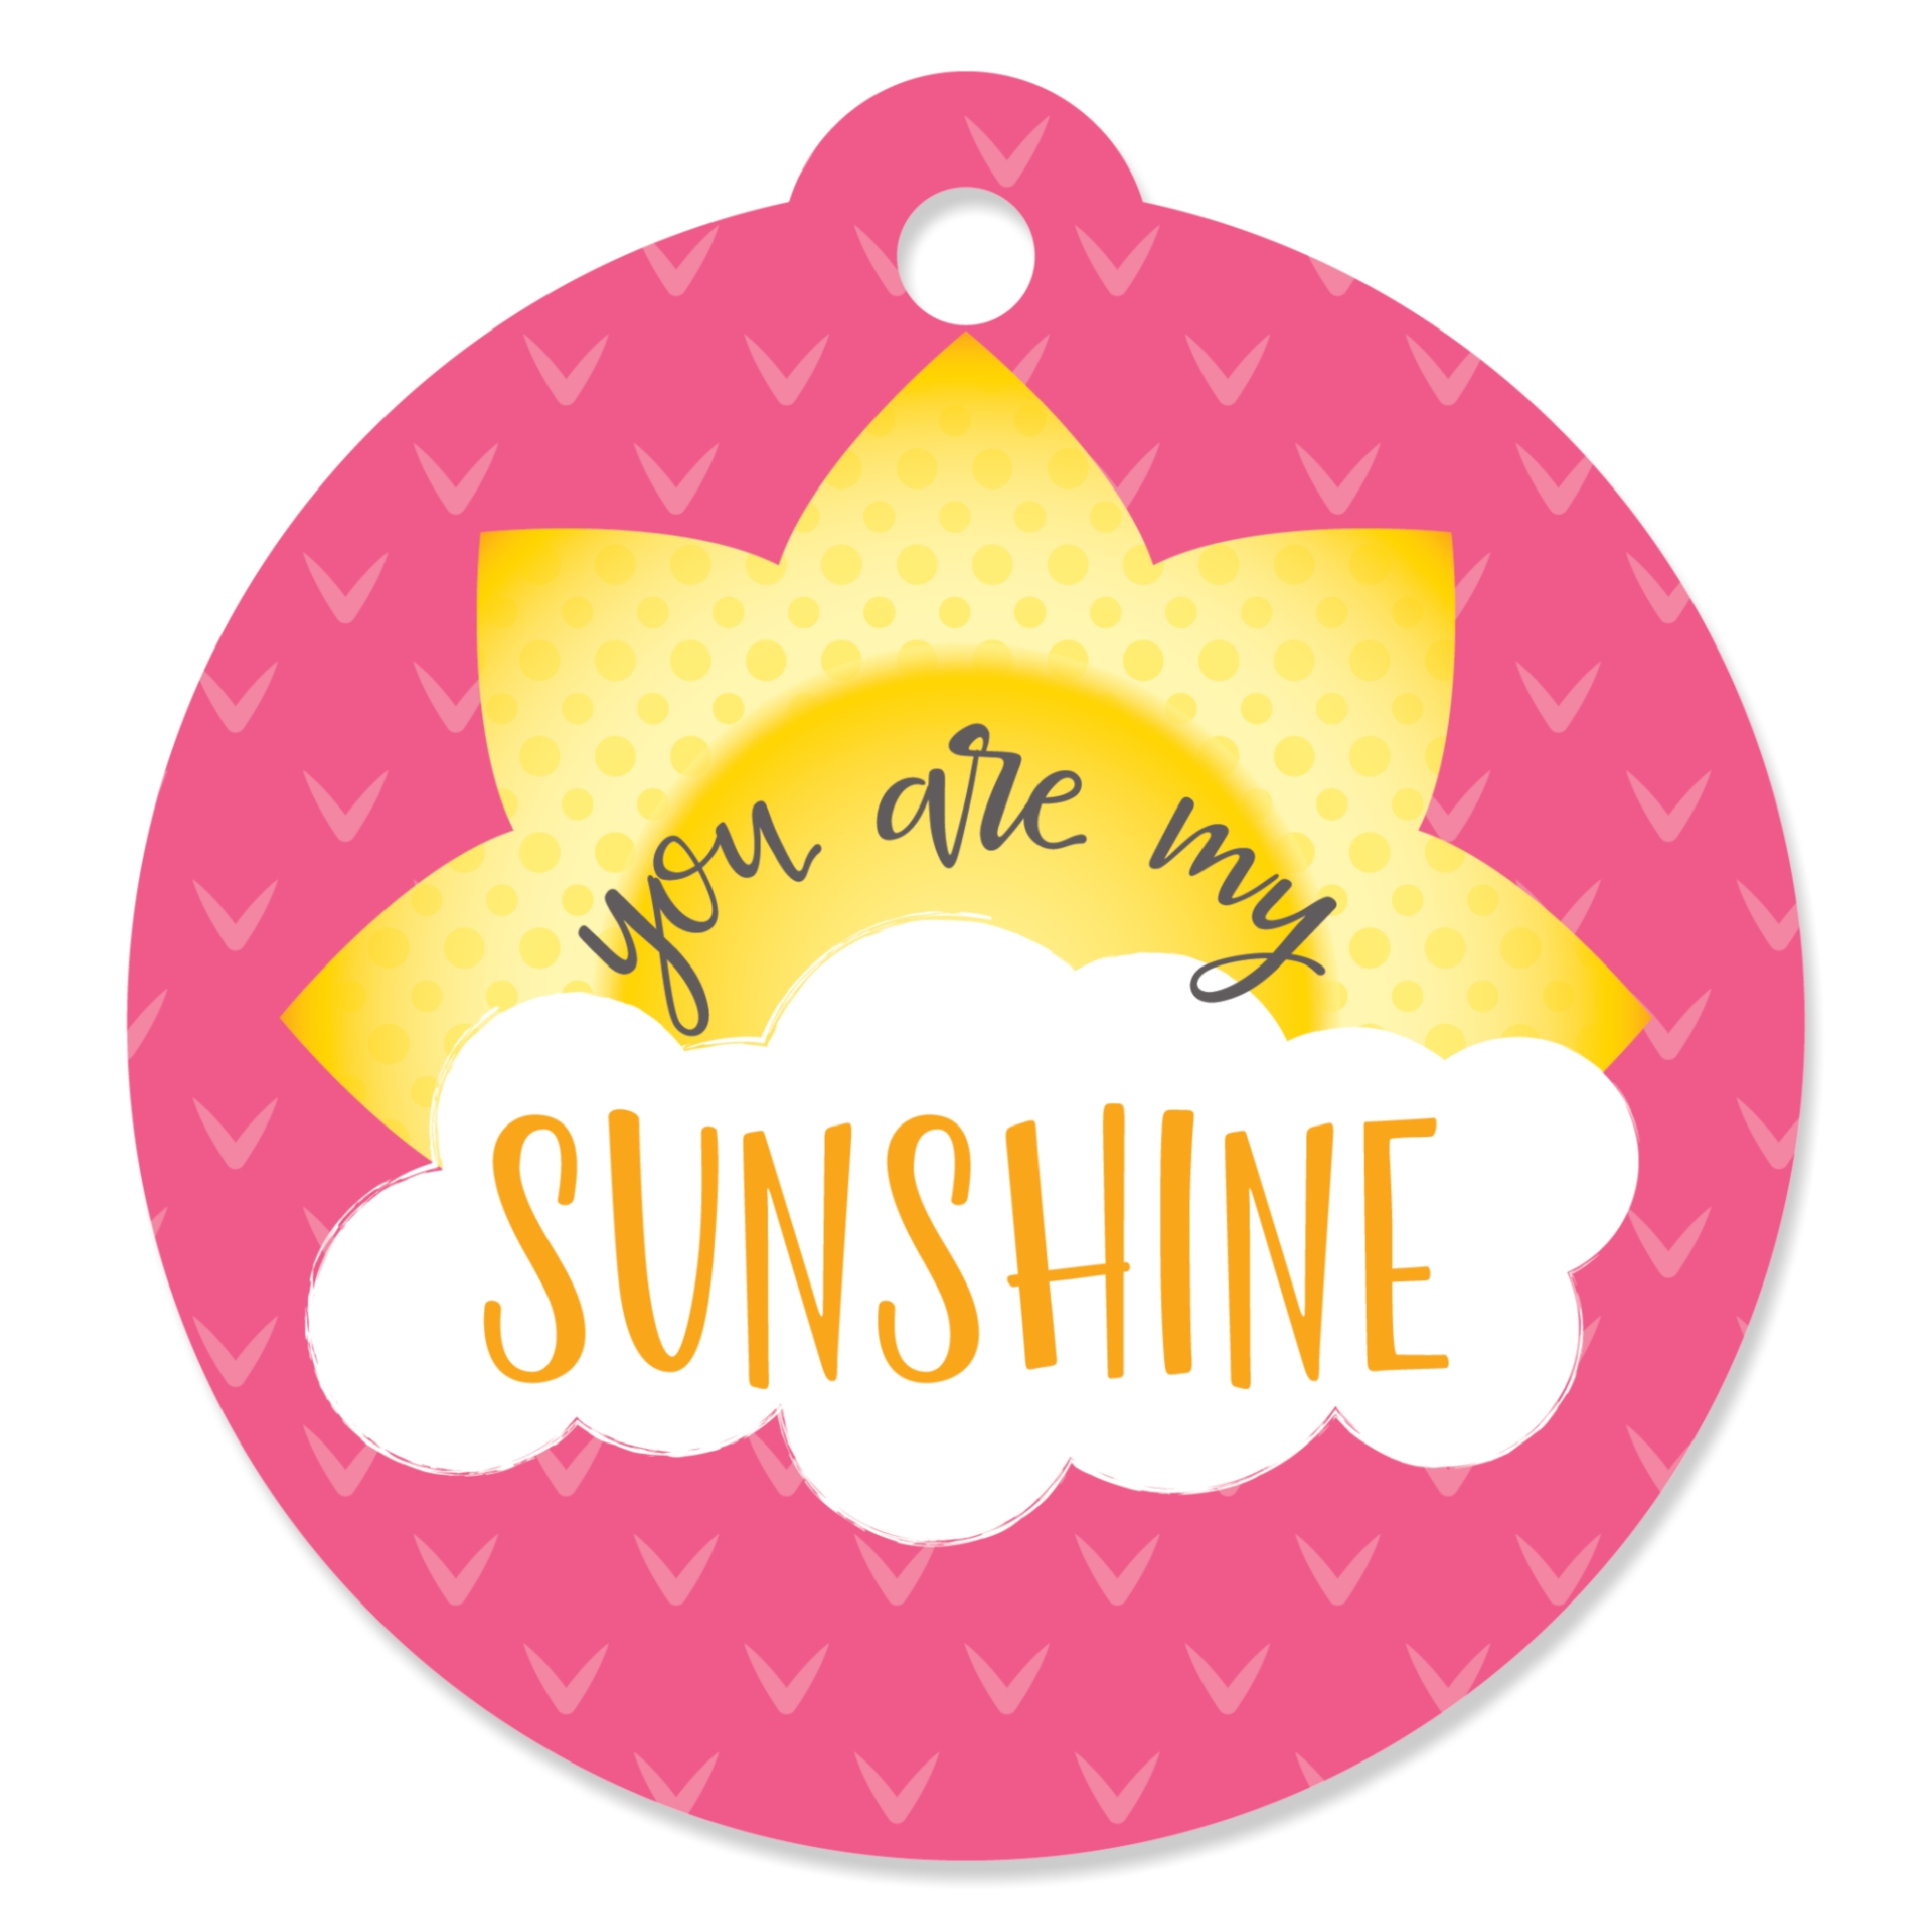 You Are My Sunshine - Baby Shower or Birthday Party Favor Gift Tags (Set of 20)